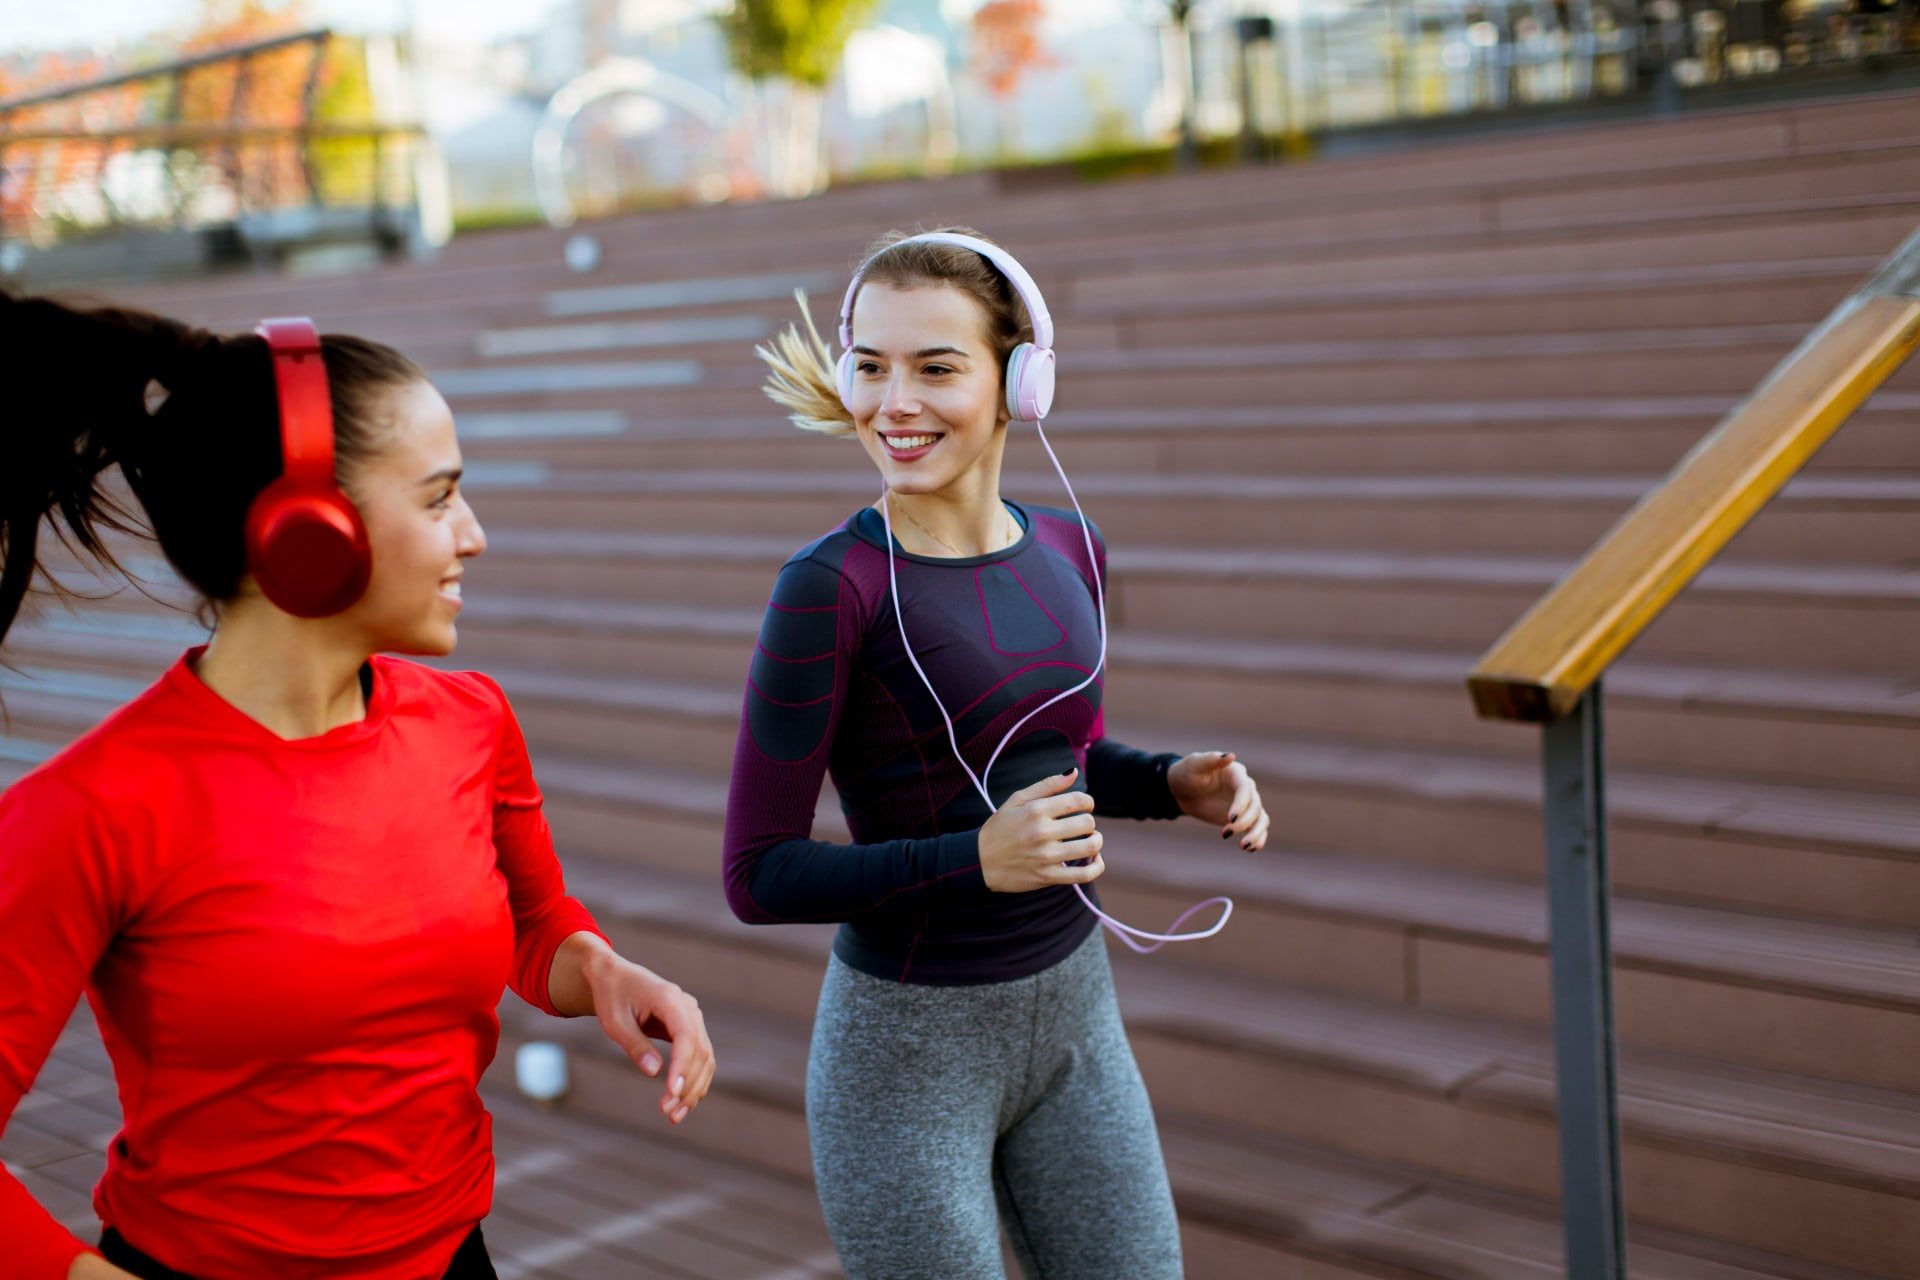 Girls running and listening to music on their headphones